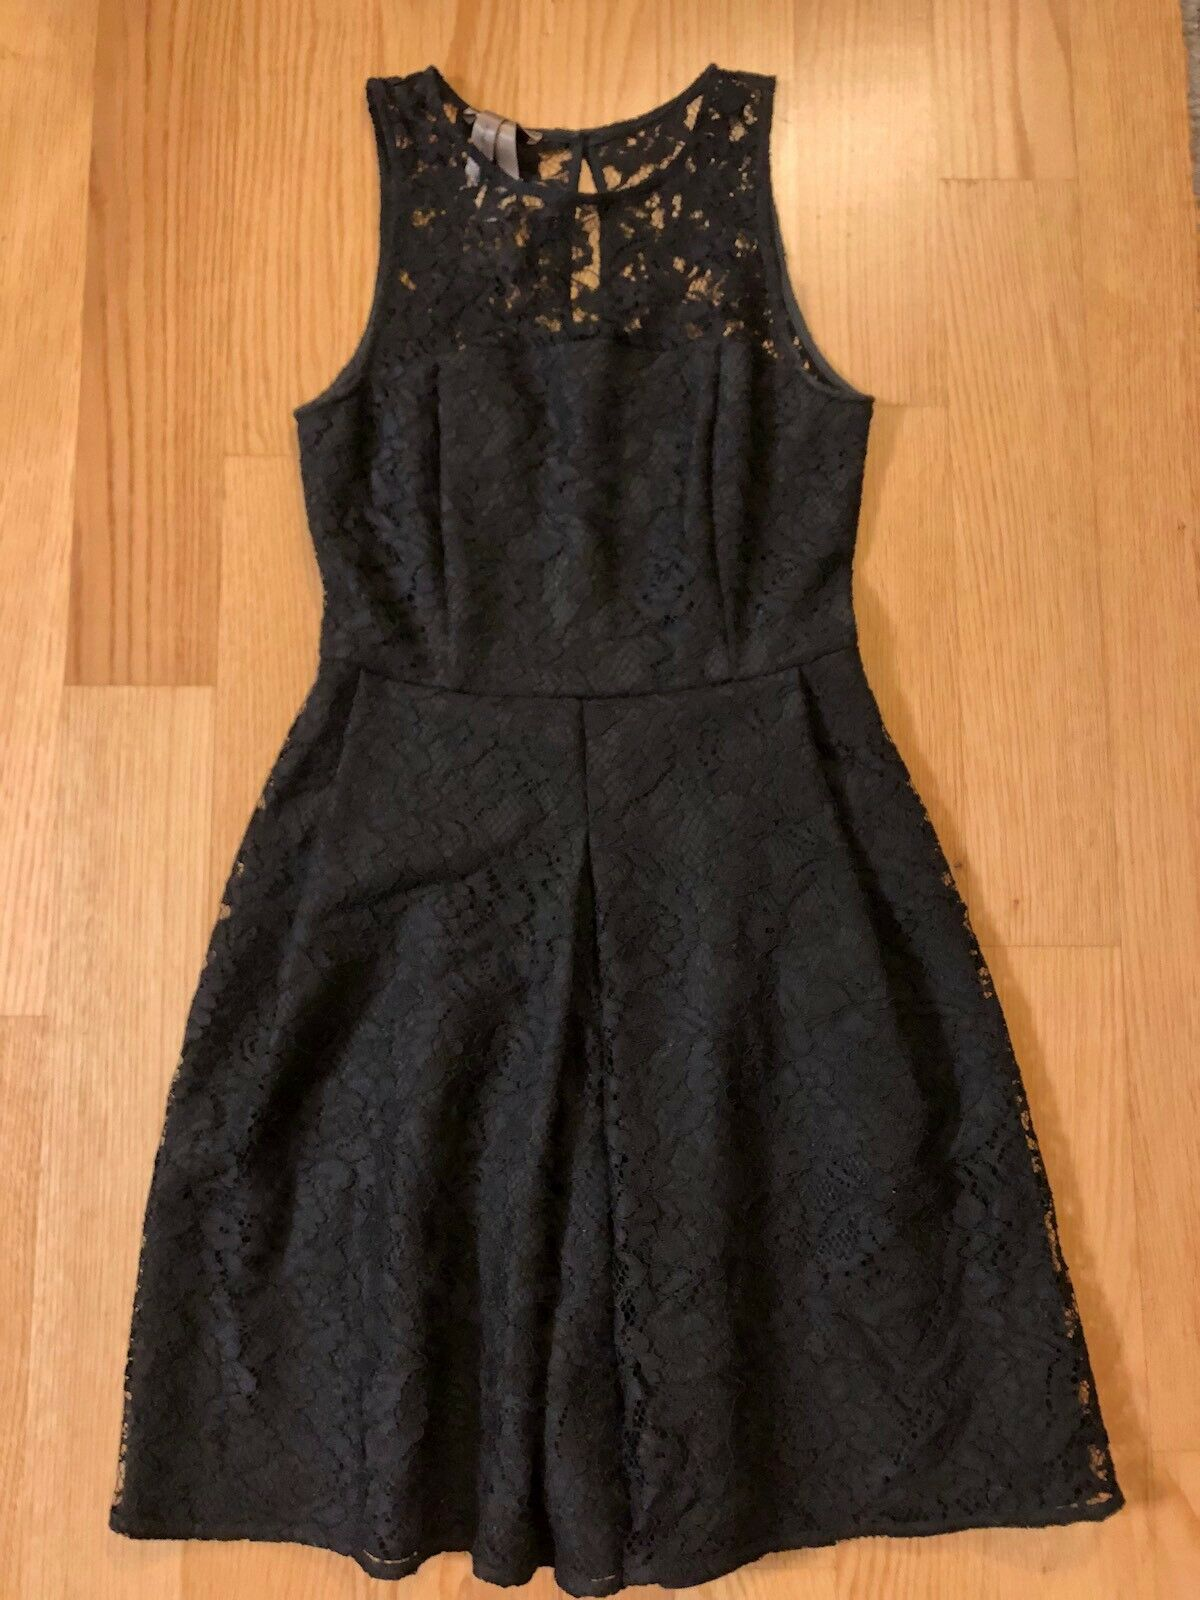 Rosao Toy G Dress schwarz Lace Crochet Cocktail Party 8 44 Sleeveless